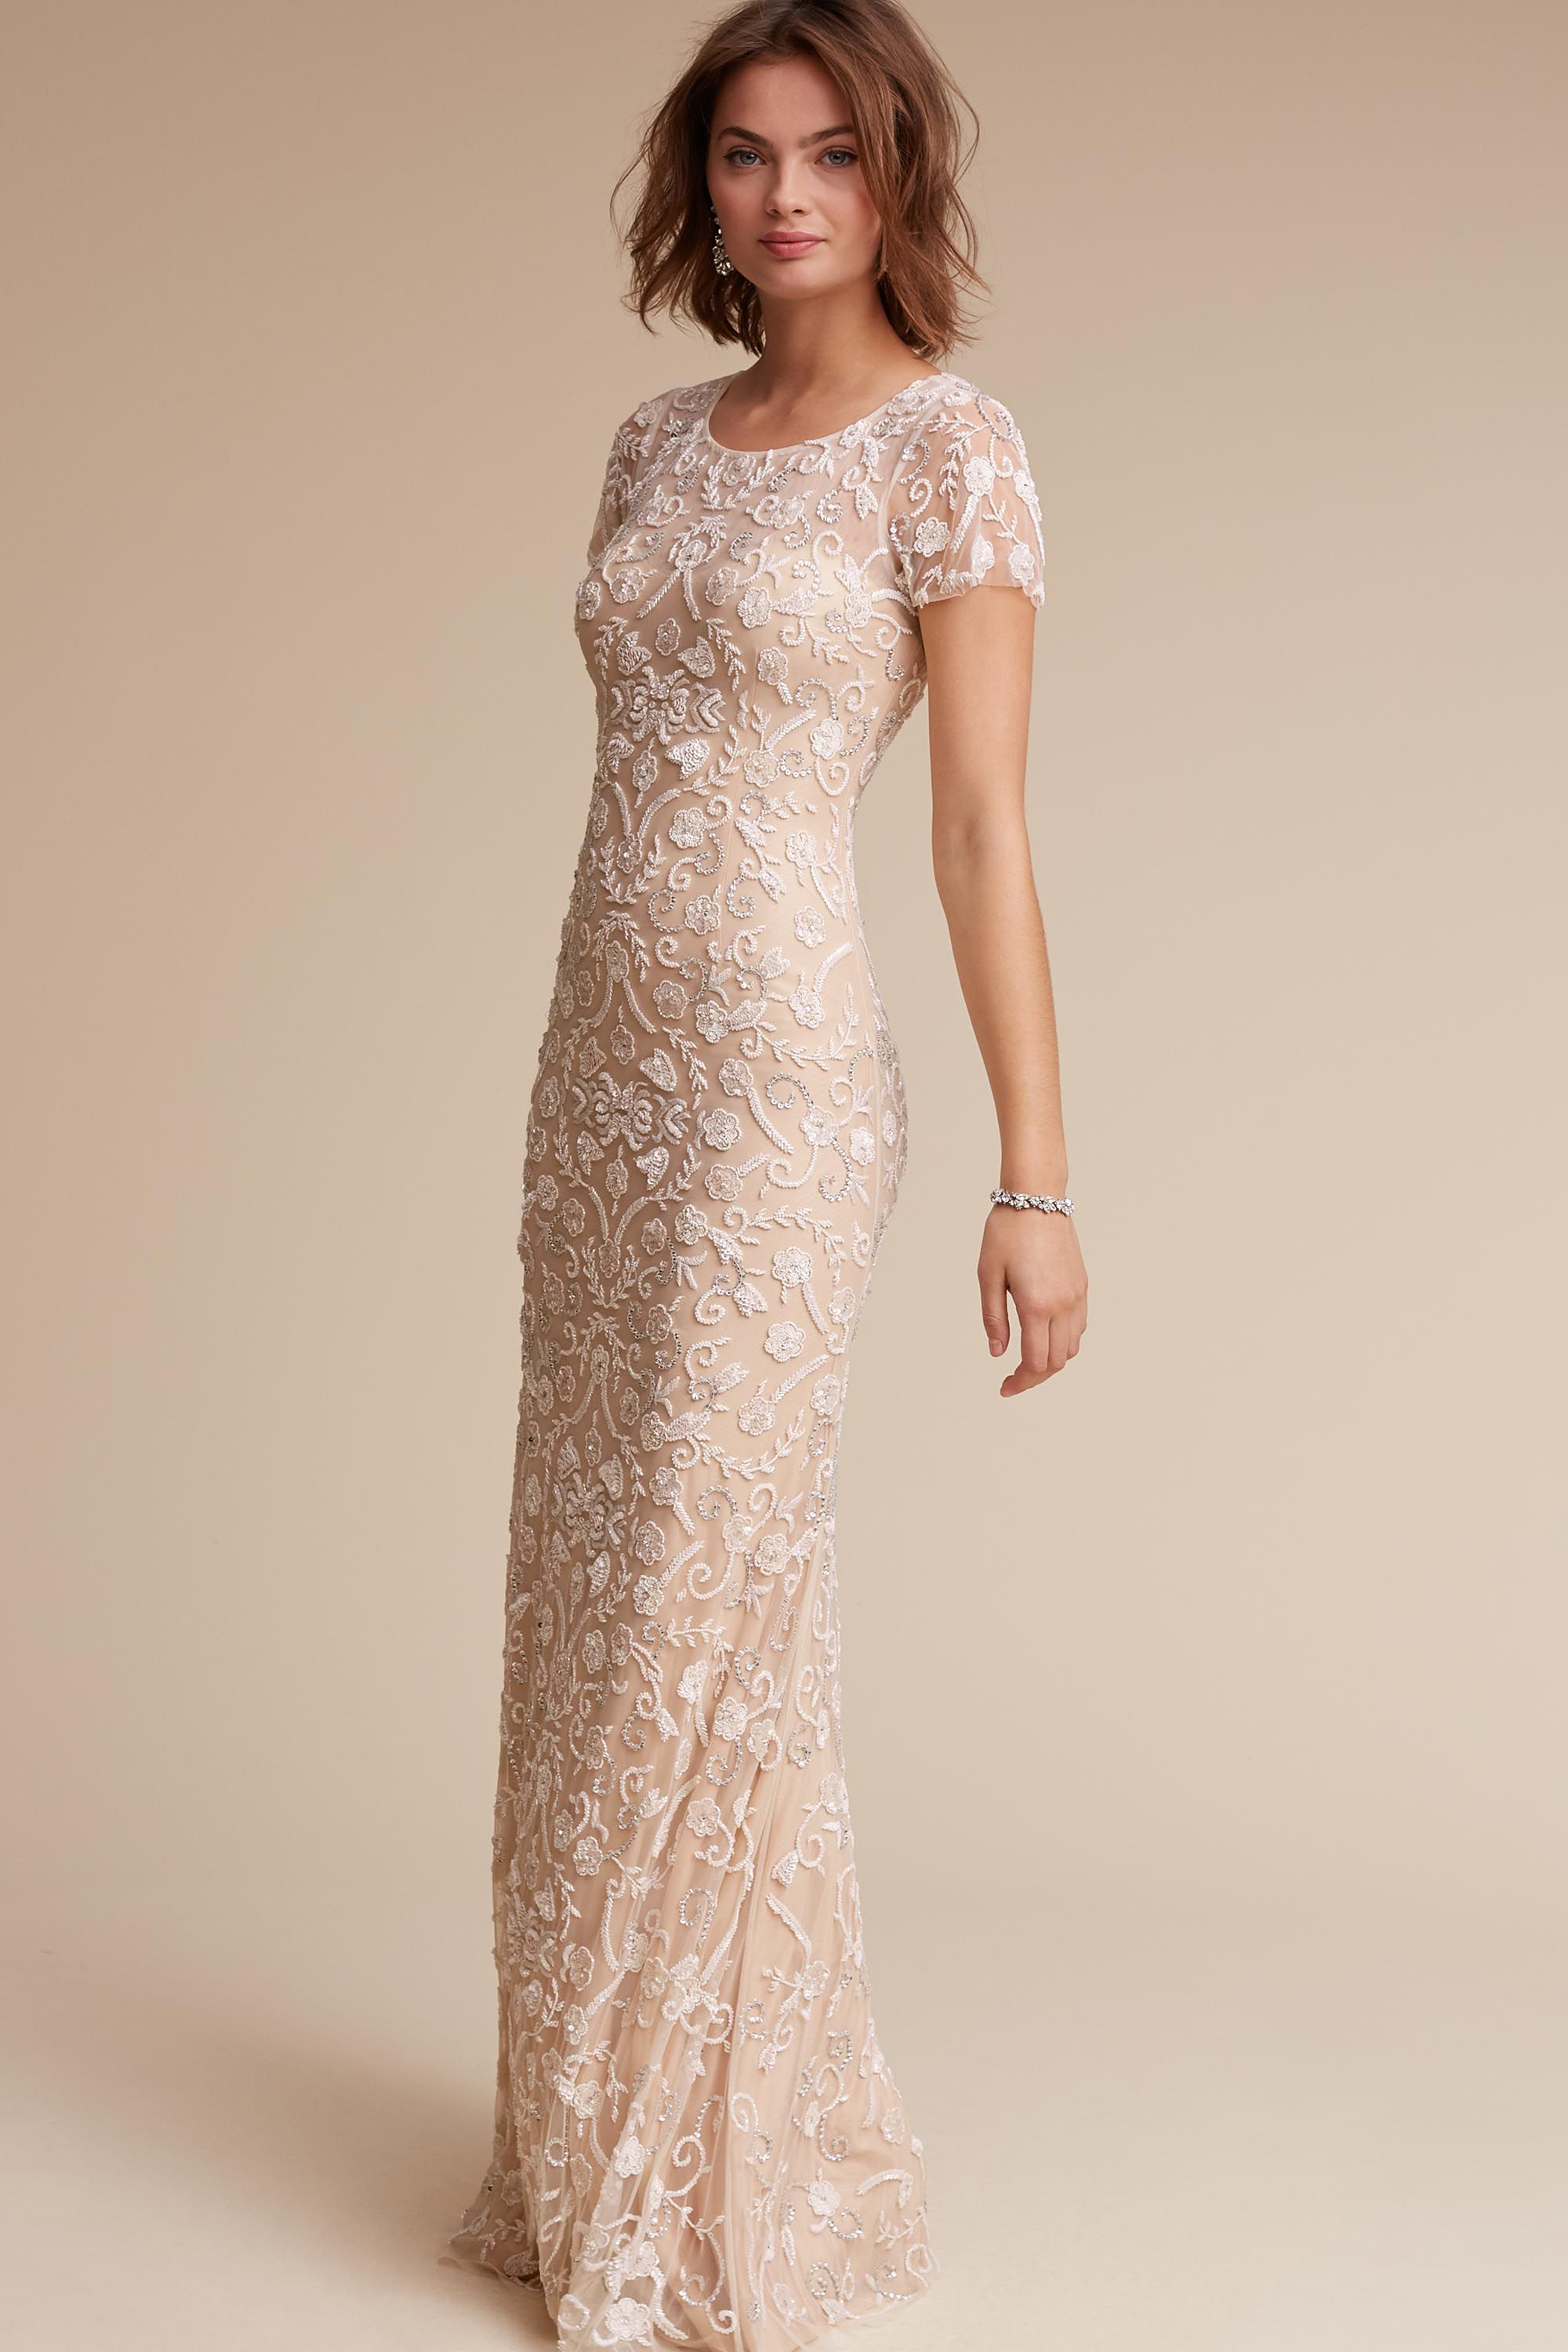 sale wedding dresses wedding dresses with sleeves Essex Gown